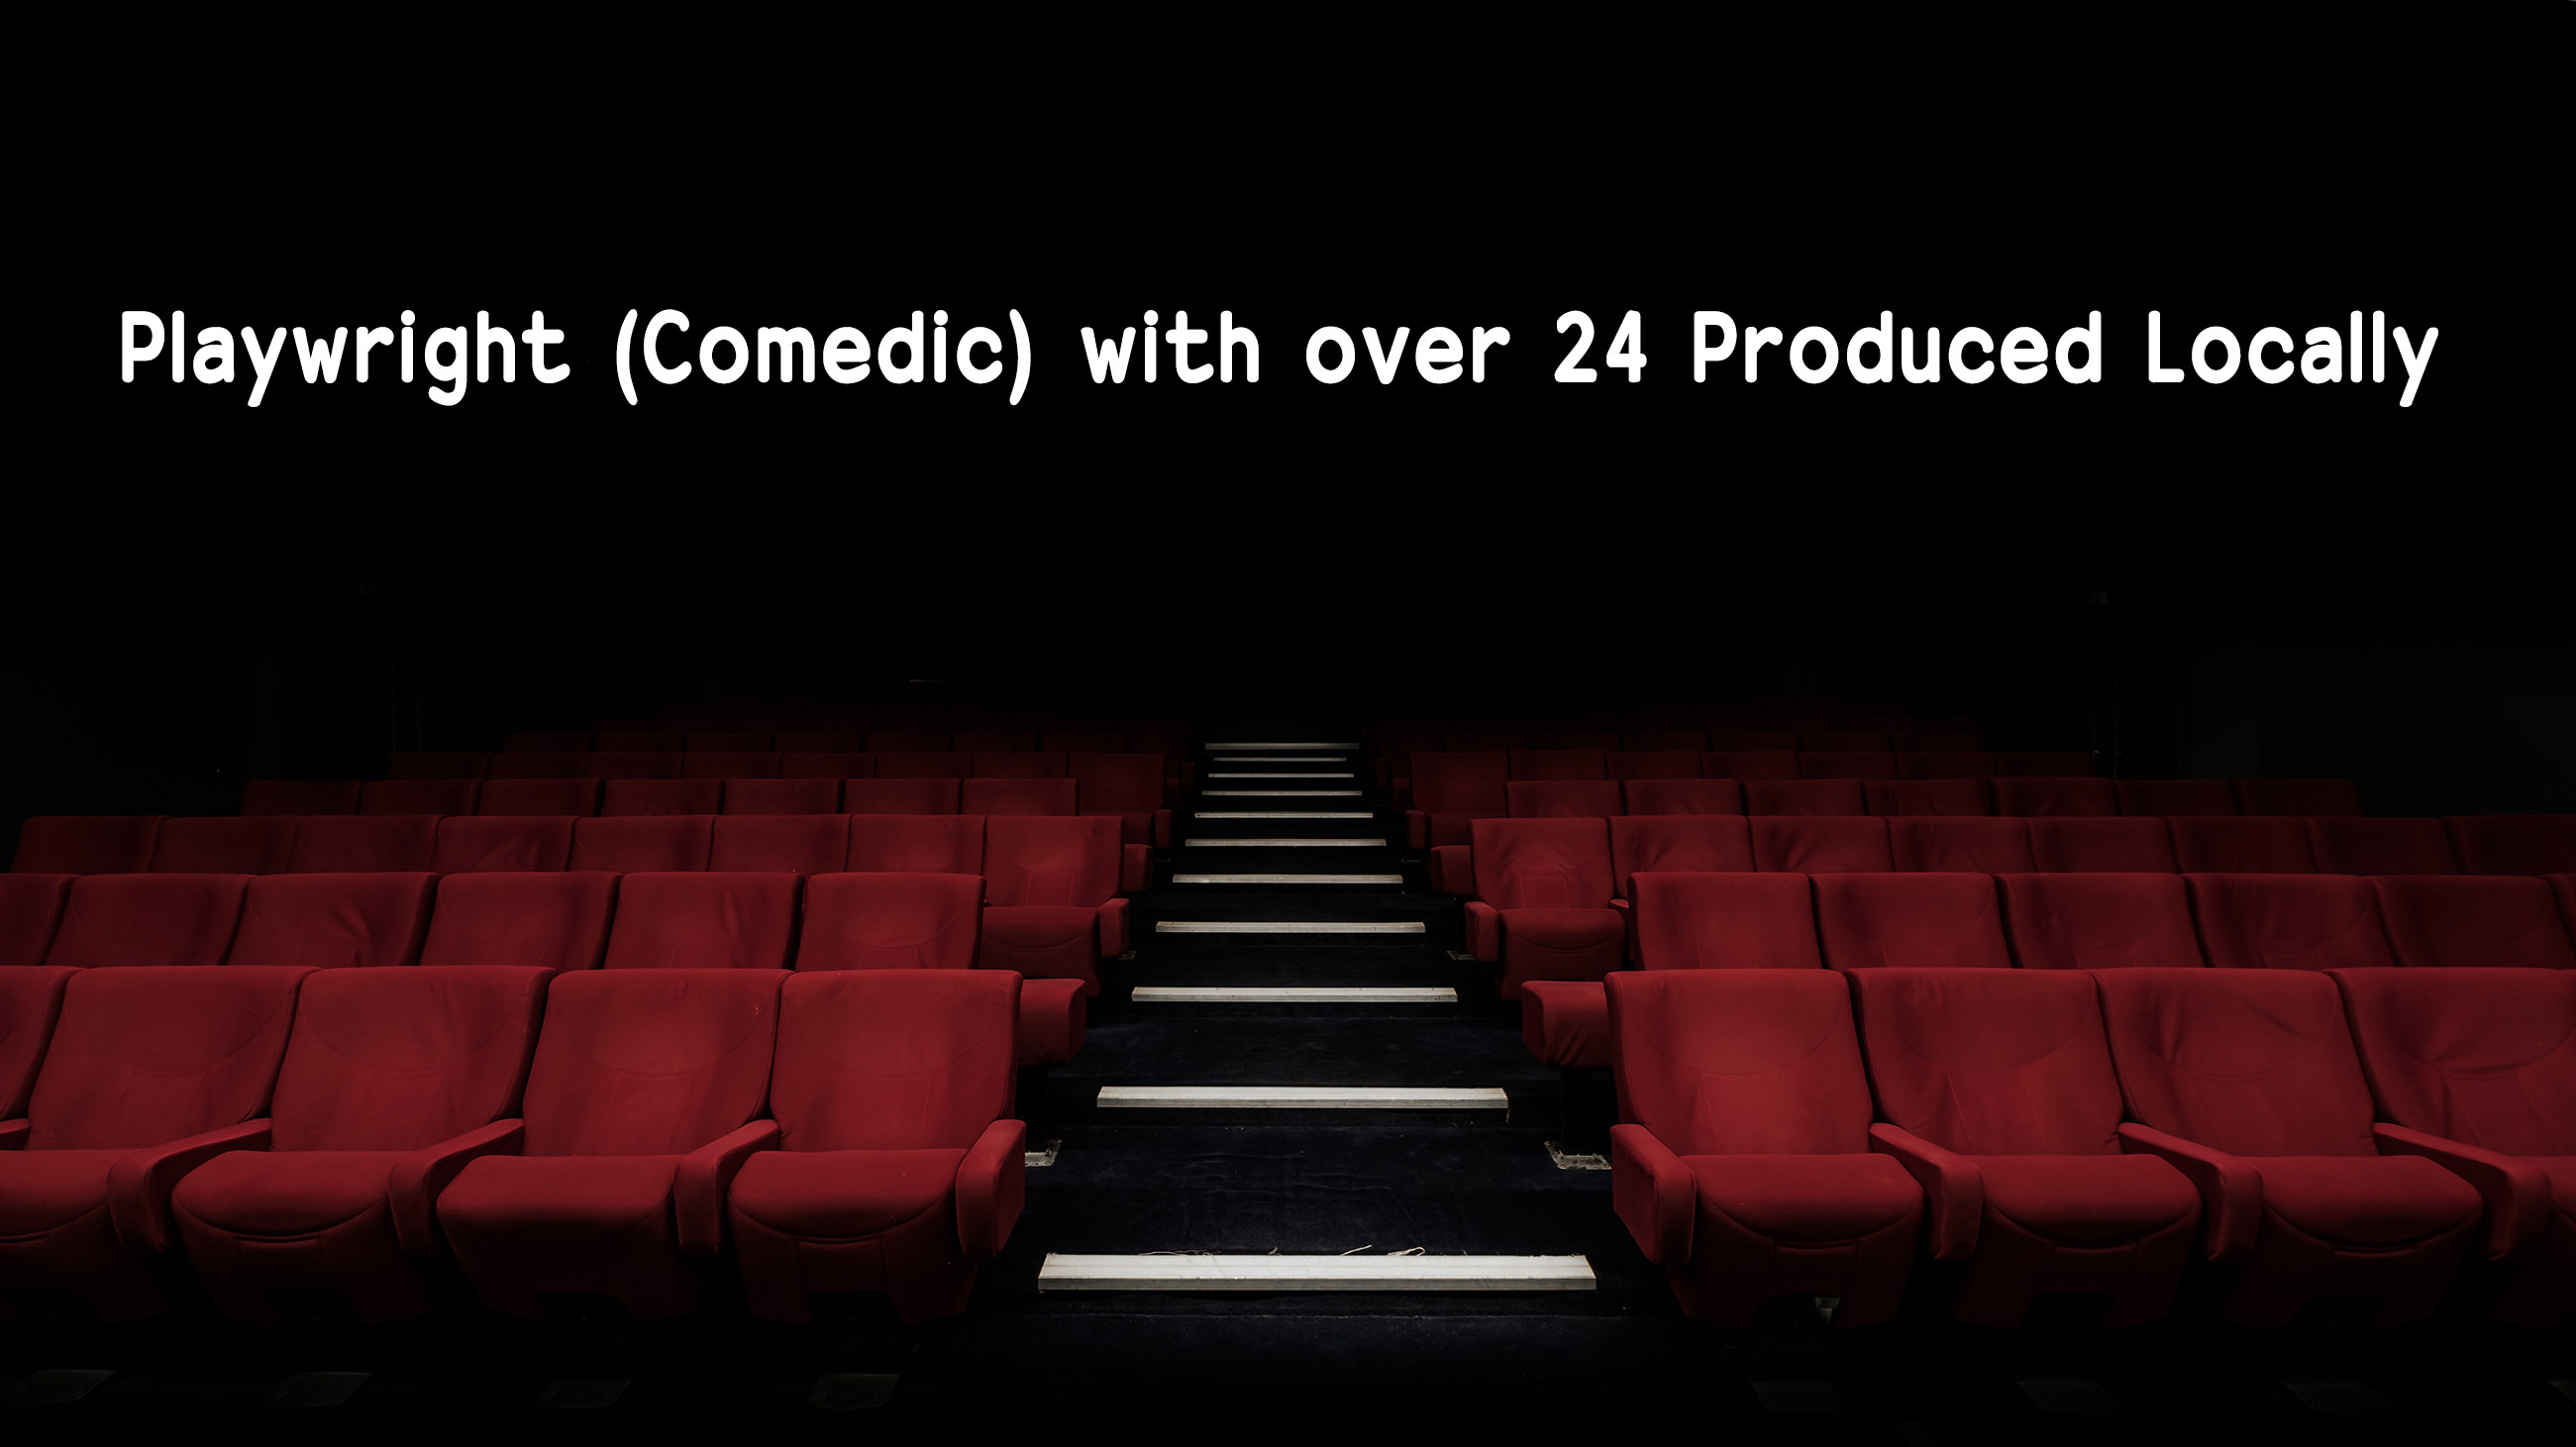 Playwright (Comedic) with 24 Plays Produced Locally